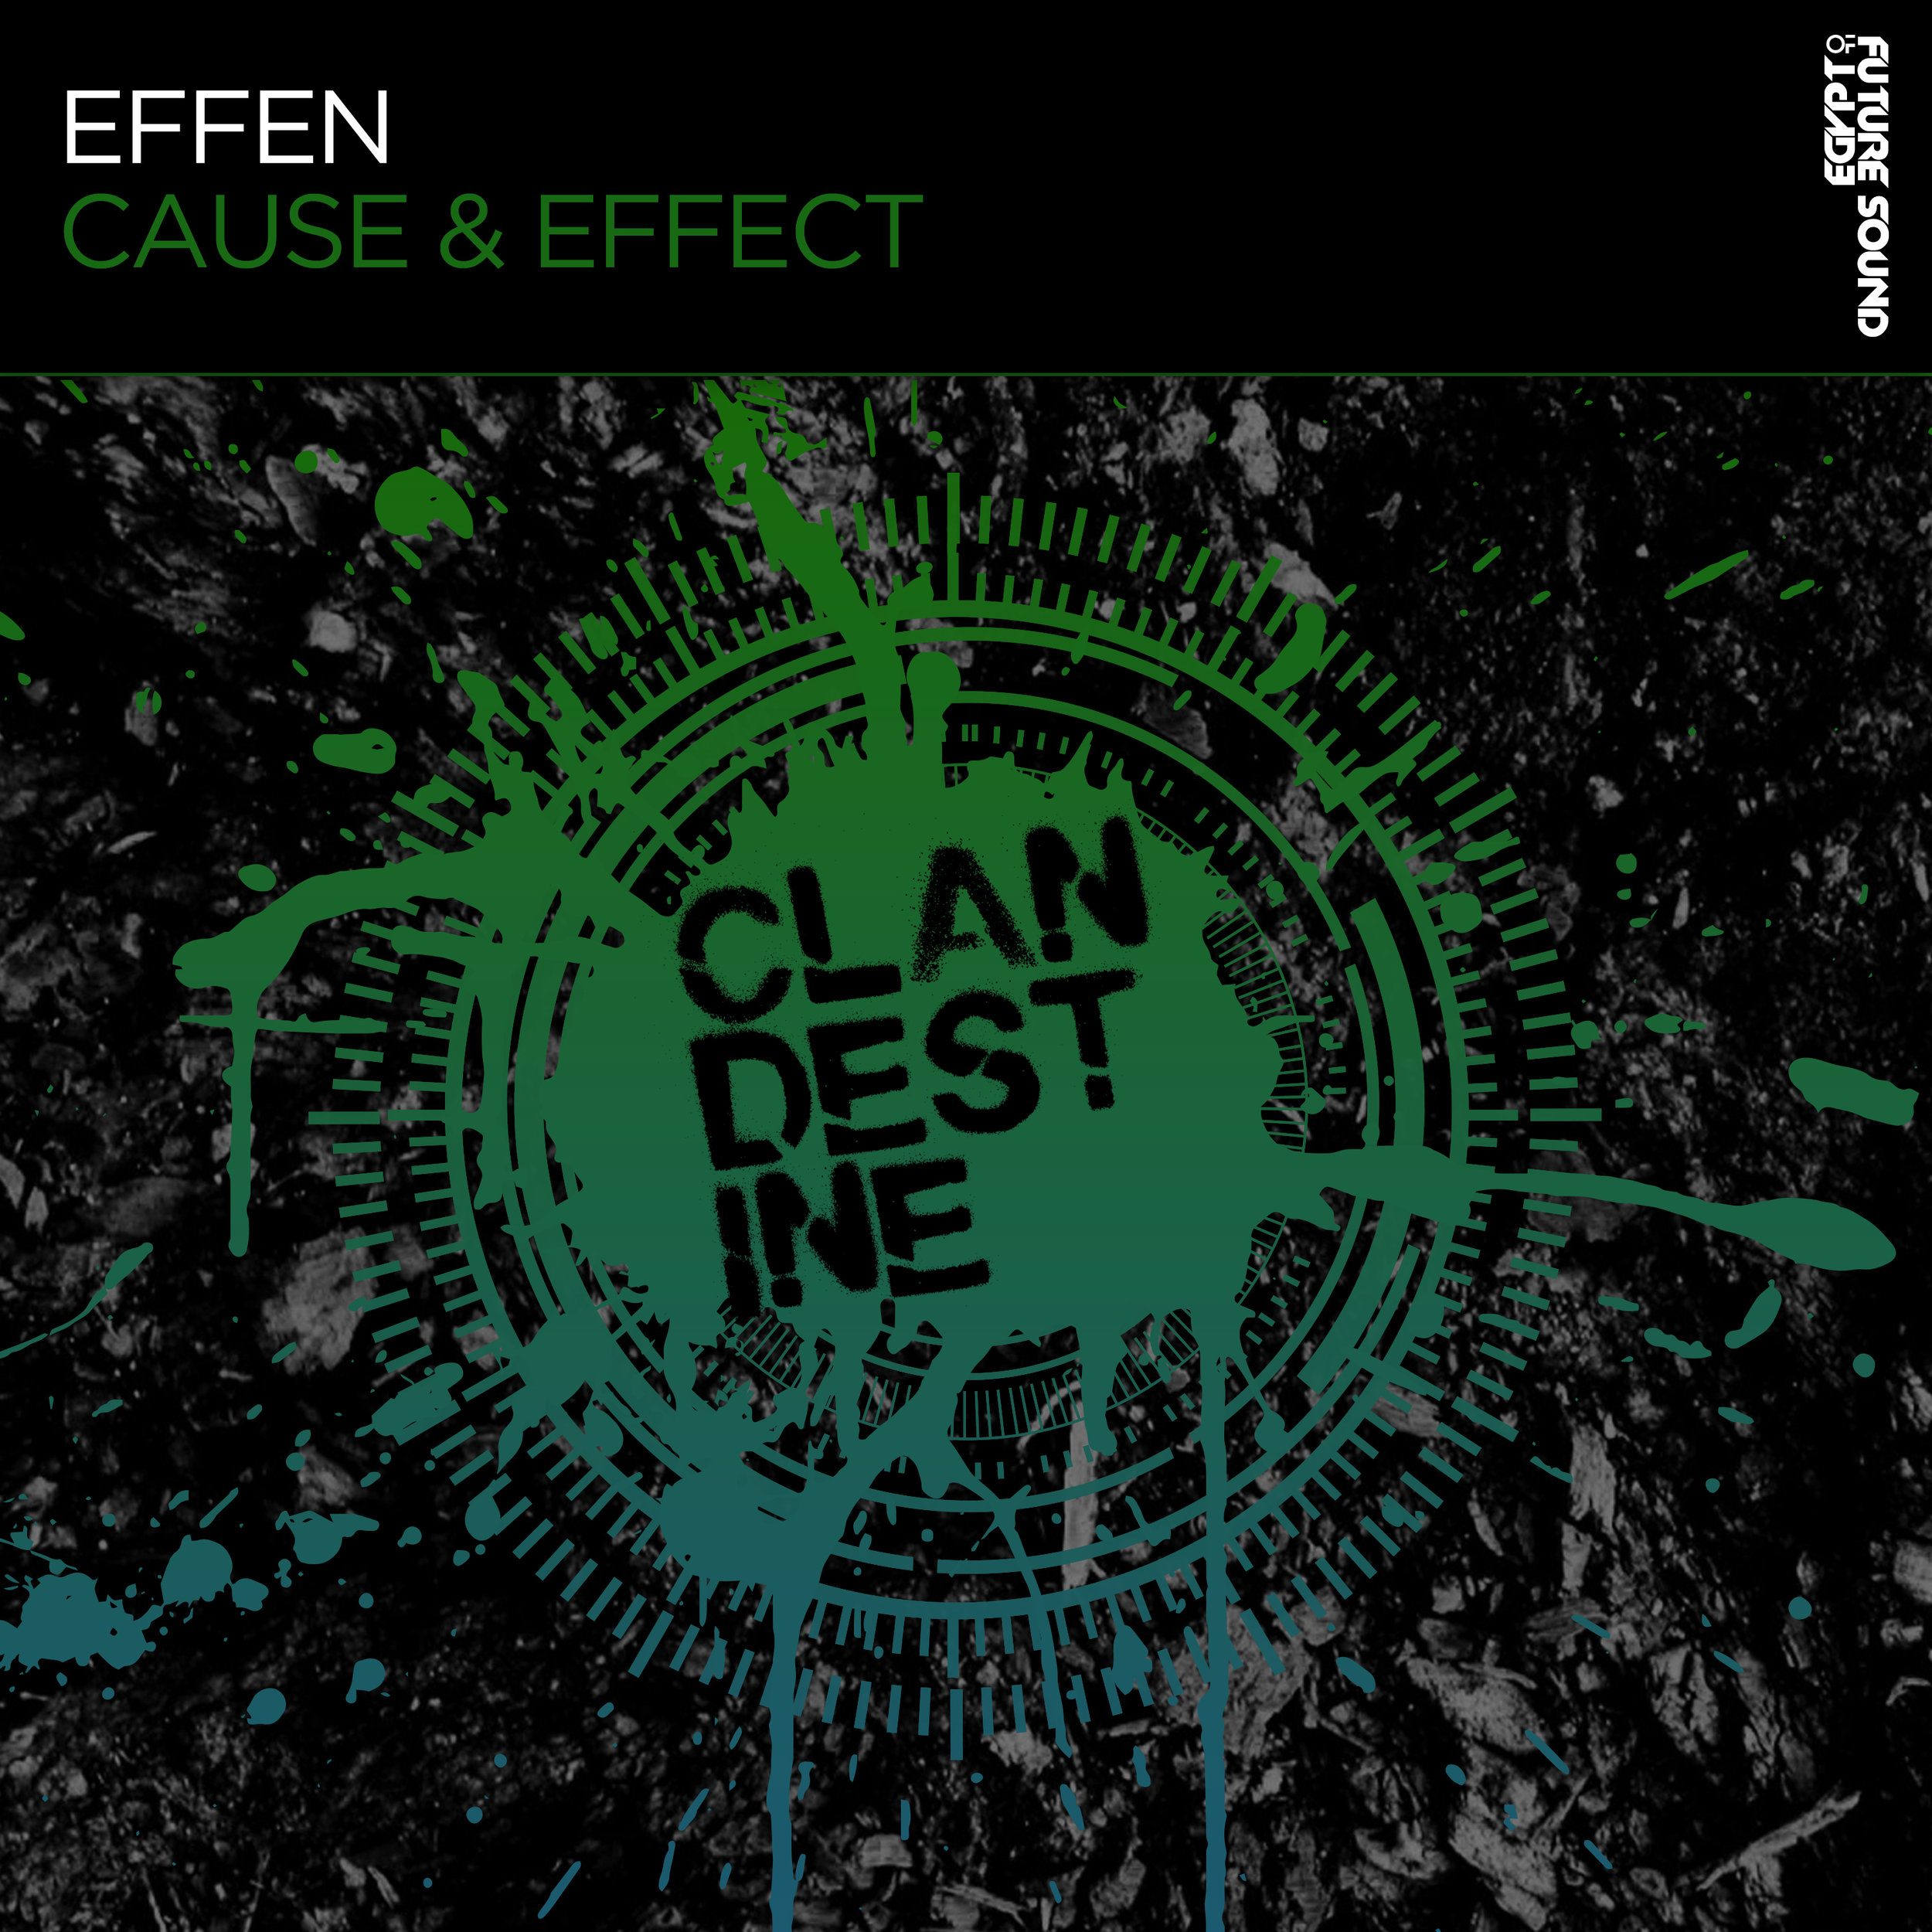 Effen - Cause & Effect Packshot.jpg